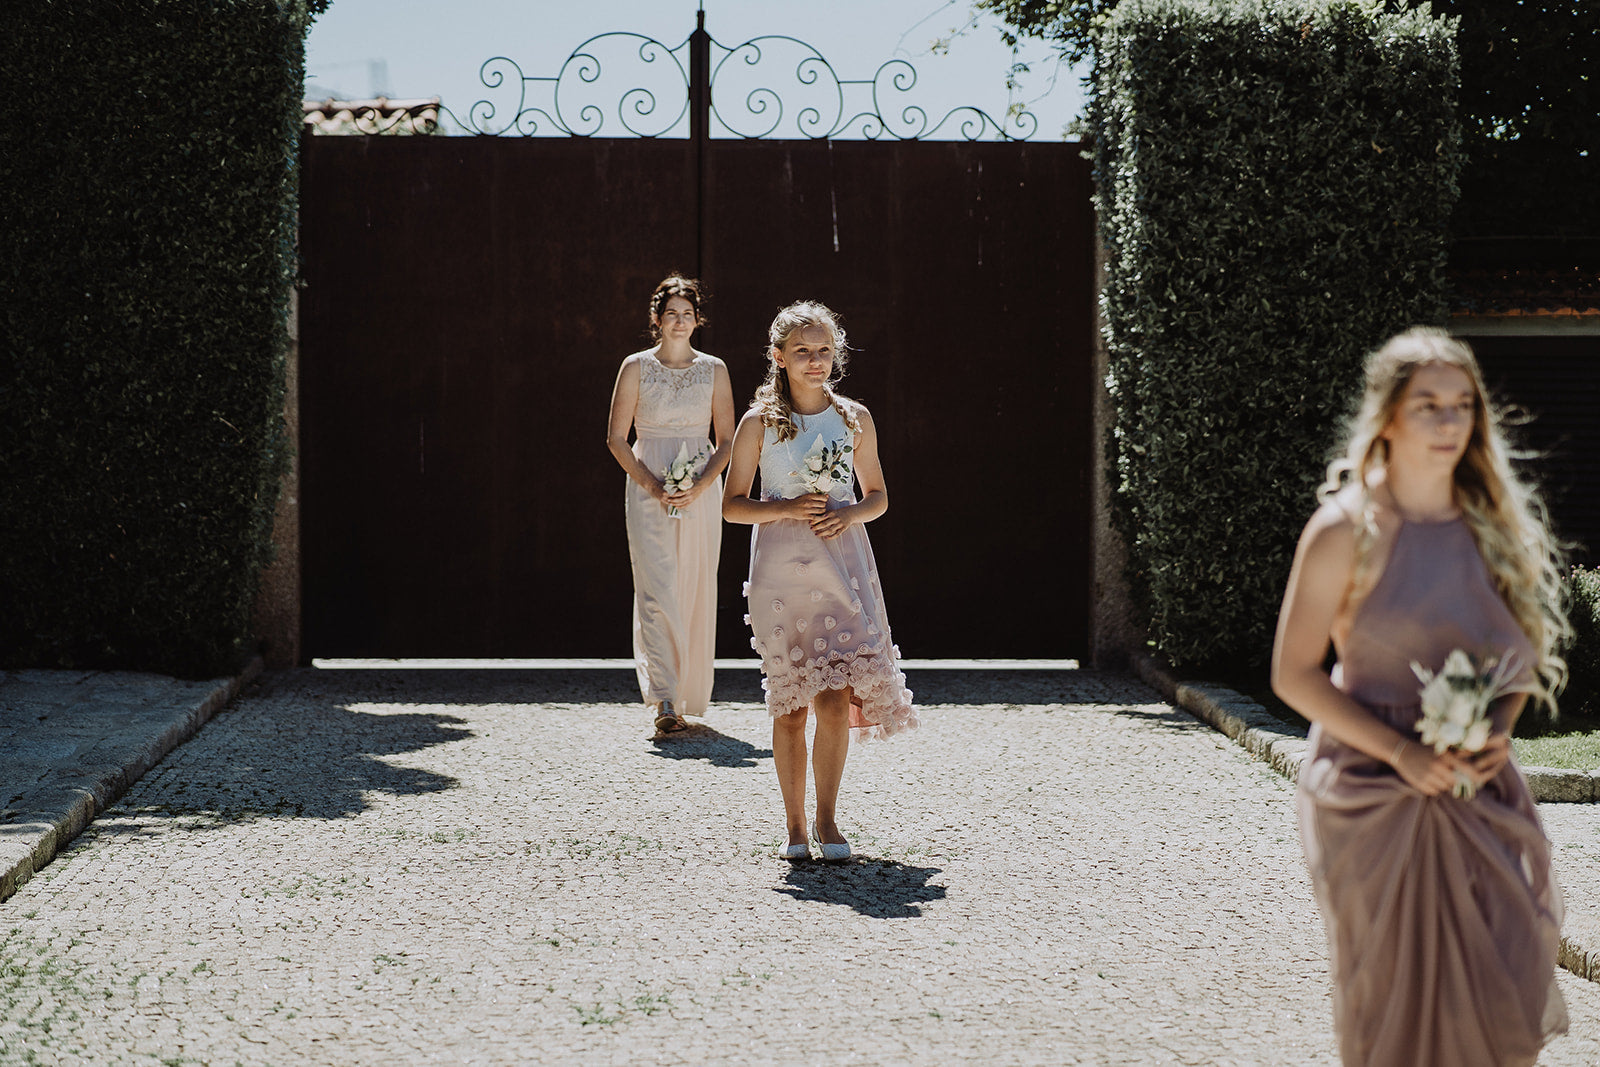 The Bridesmaids walking down the isle, in the garden setting, holding flowers.